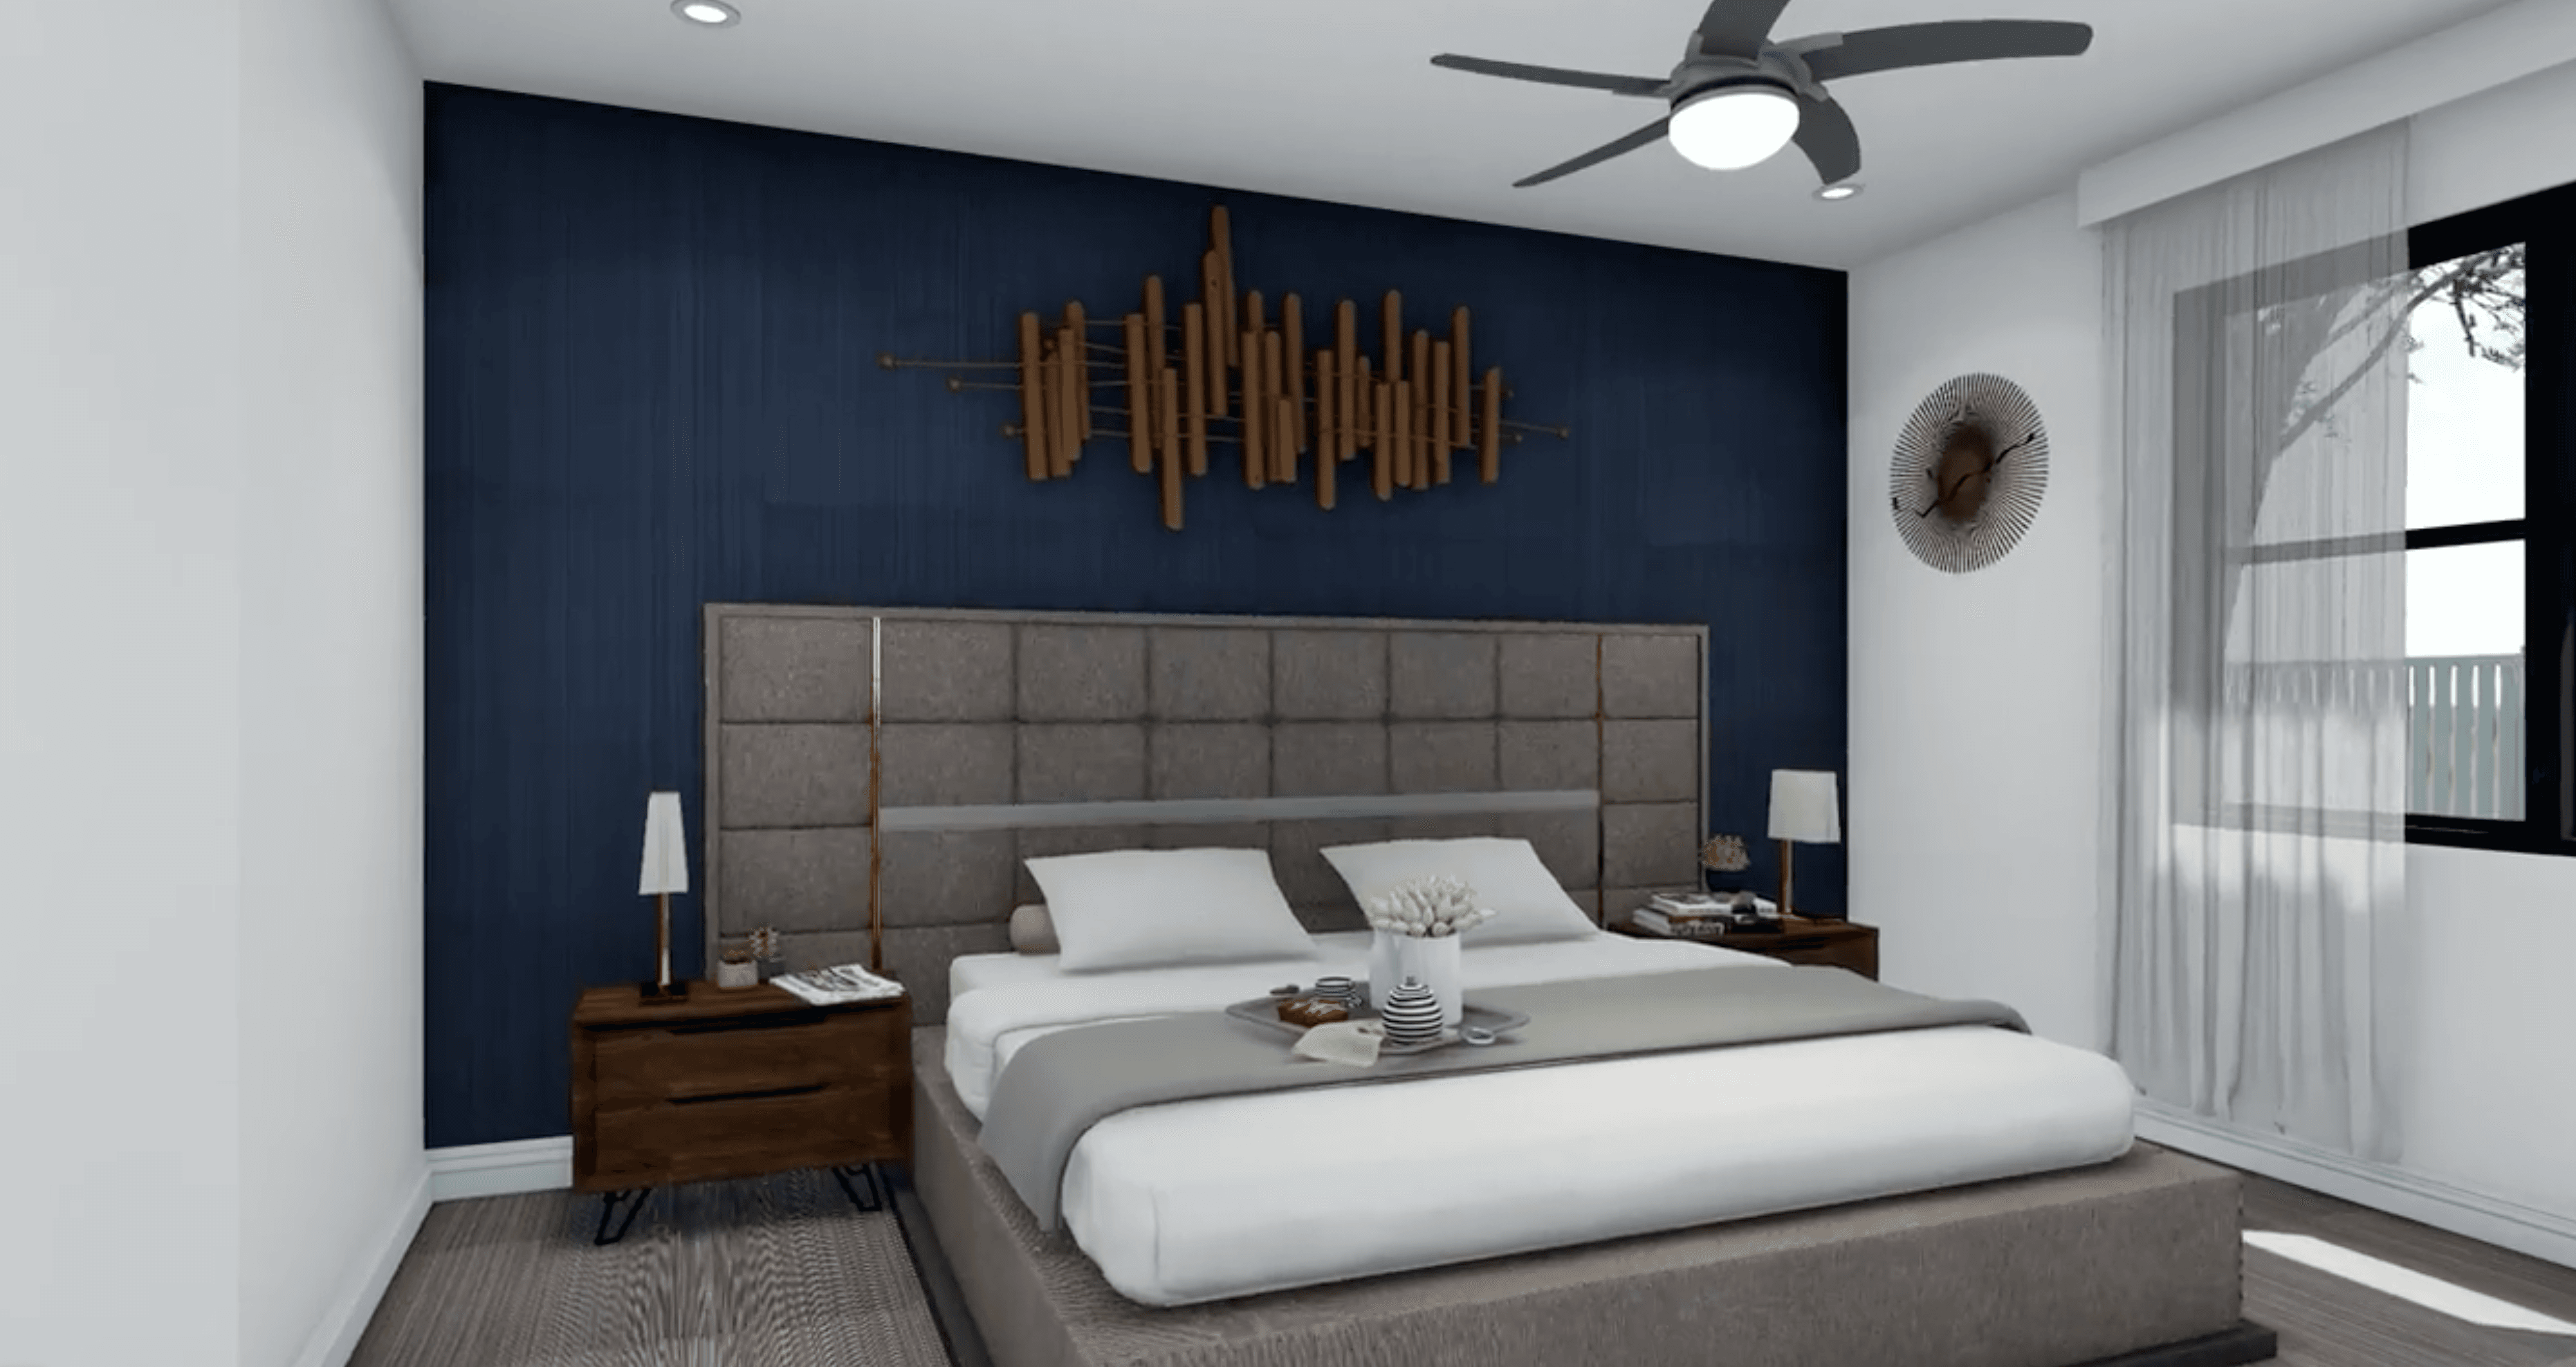 Bedroom featured in the Model 2370 By Genesis Homes in Melbourne, FL